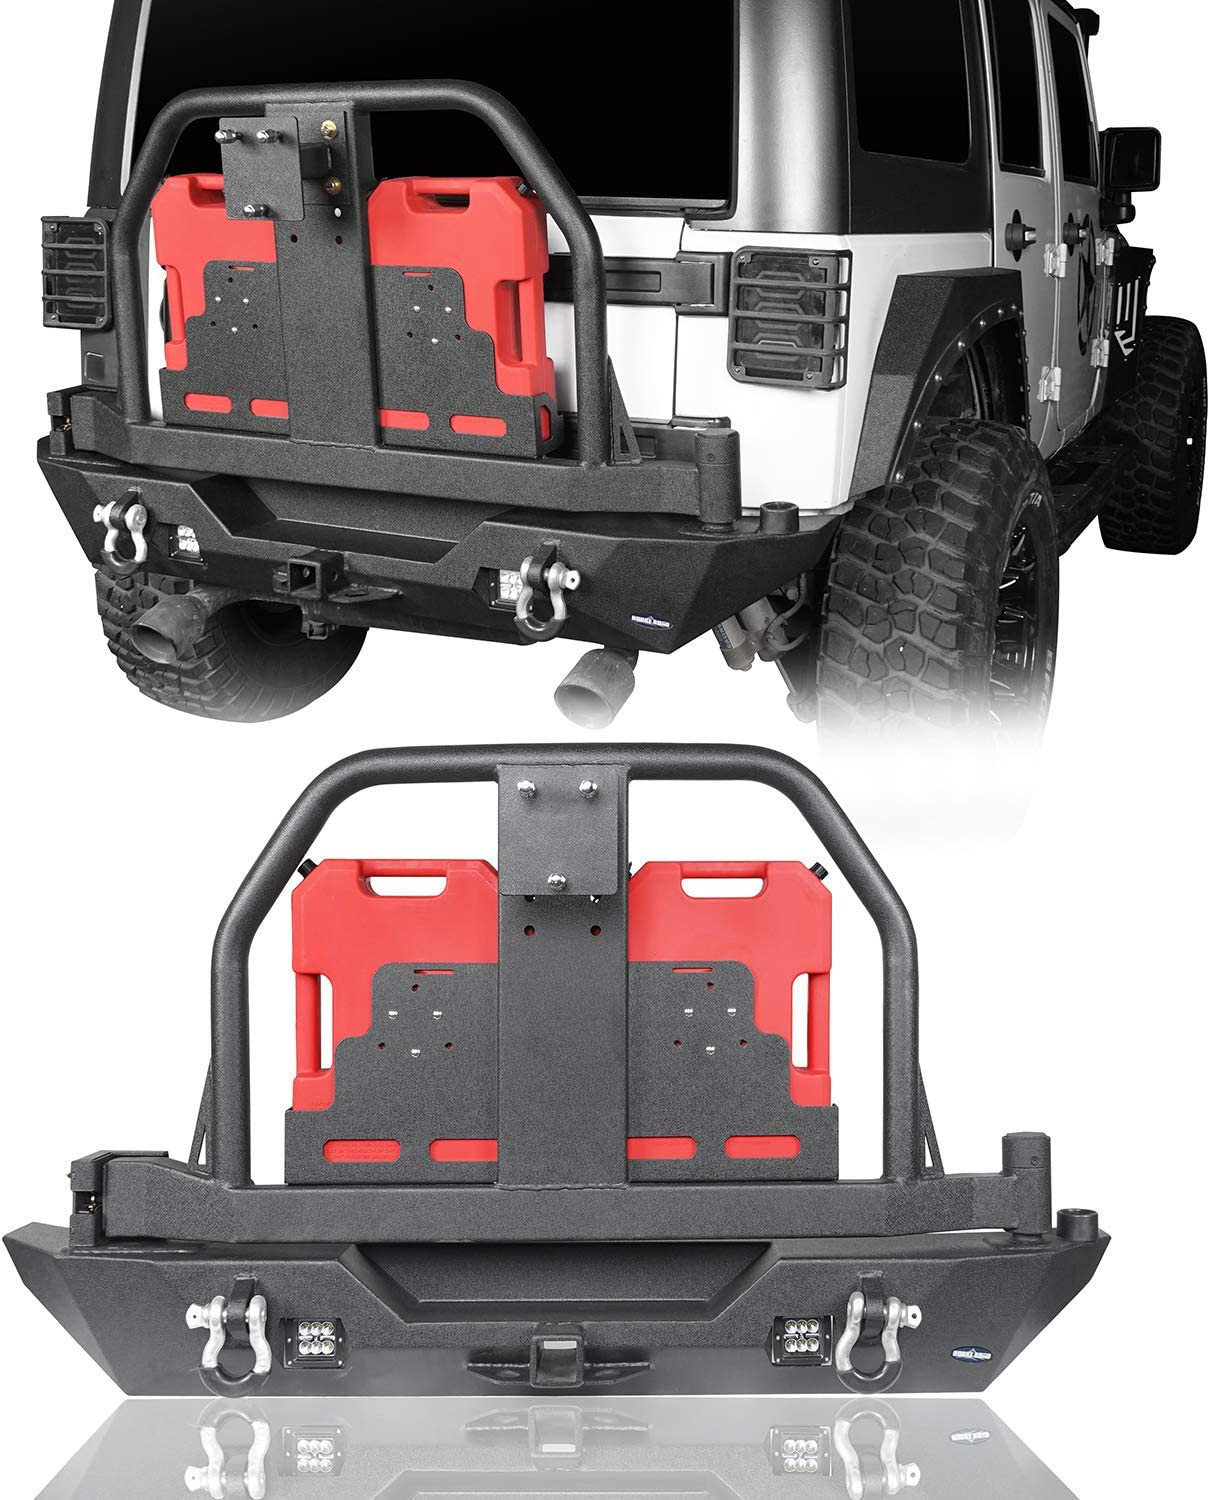 Amazon Com Hooke Road Rear Bumper Spare Tire Carrier W Oil Drum Holder Receiver Hitches Compatible With Jeep Wrangler Jk Unlimited 2007 2018 Automotive